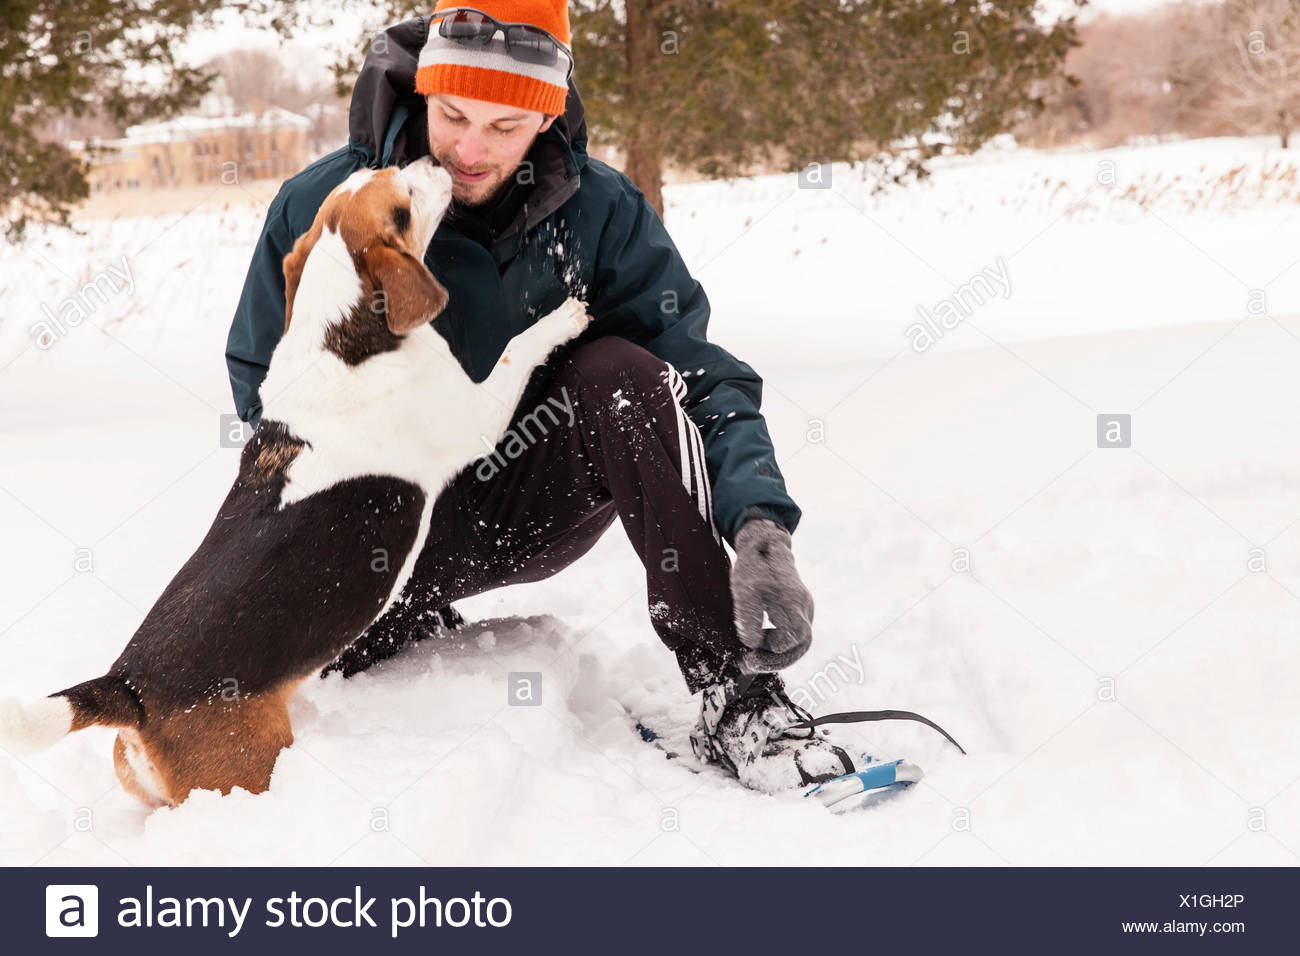 Snowshoer and his dog - Stock Image